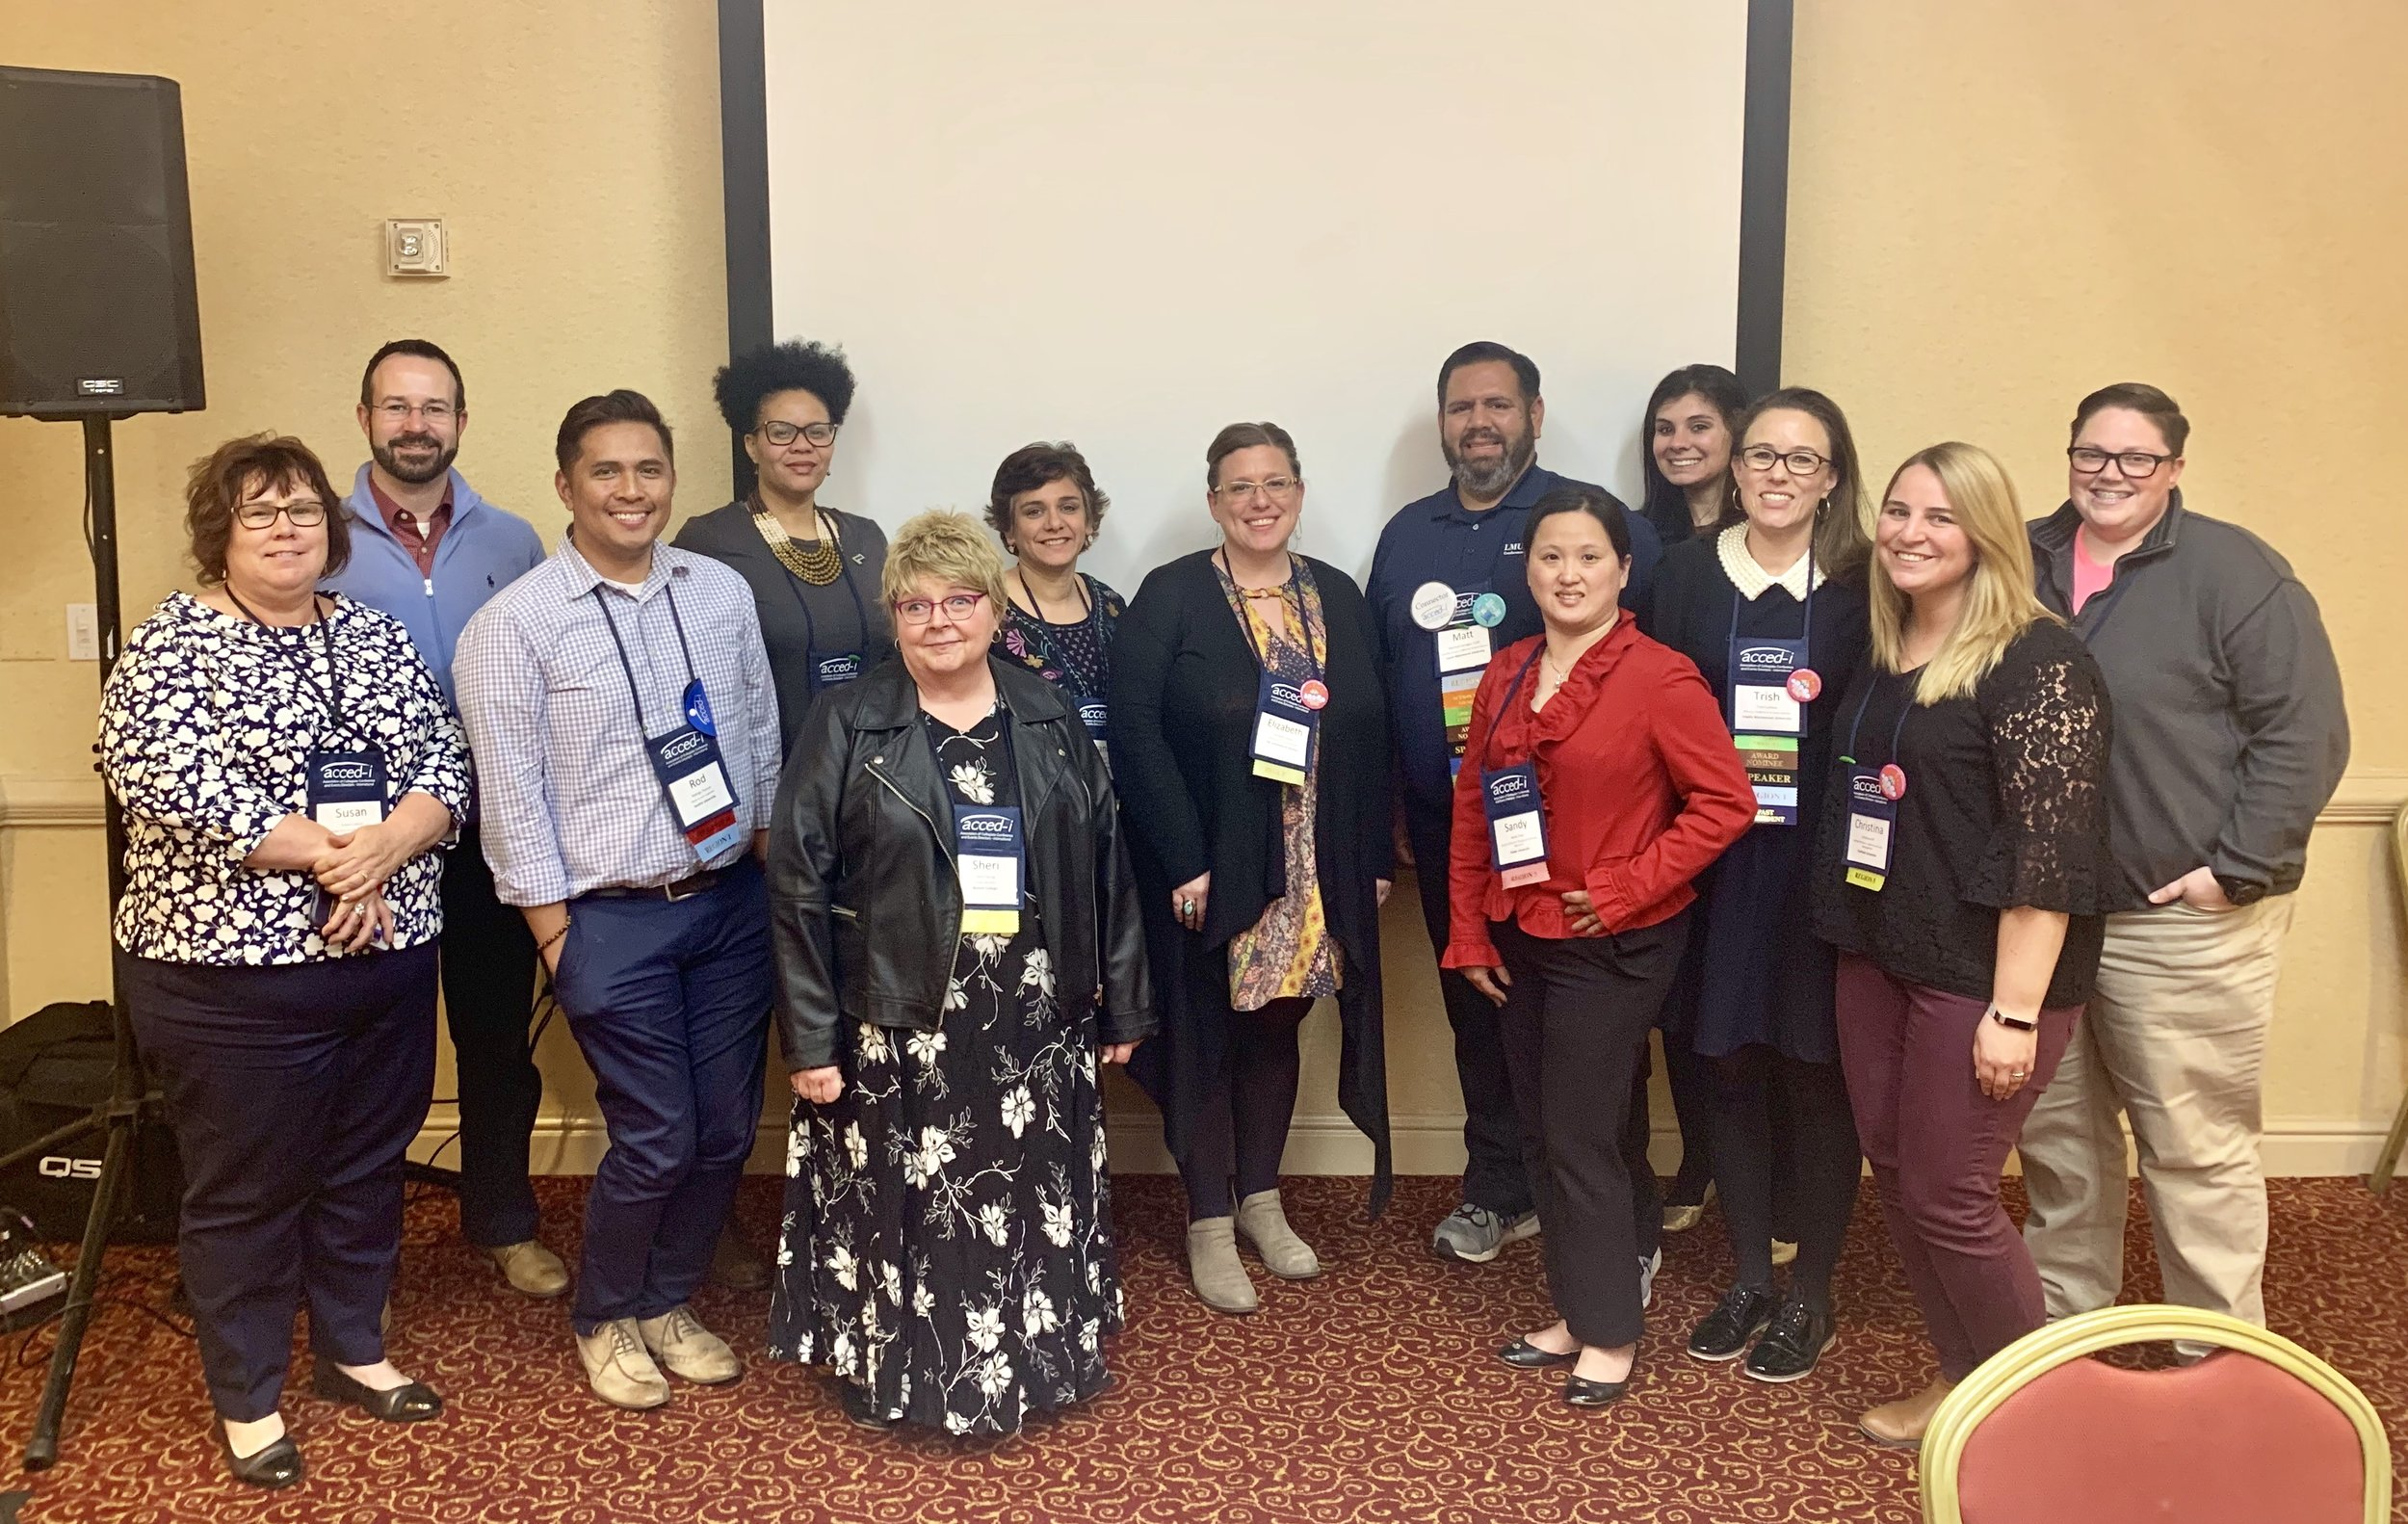 Members of the AJCU Conference and Event Professionals Conference met at the Wyndham Grand Pittsburg Downtown Hotel for their annual meeting on March 25, 2019 (photo courtesy of Trish Carlson)